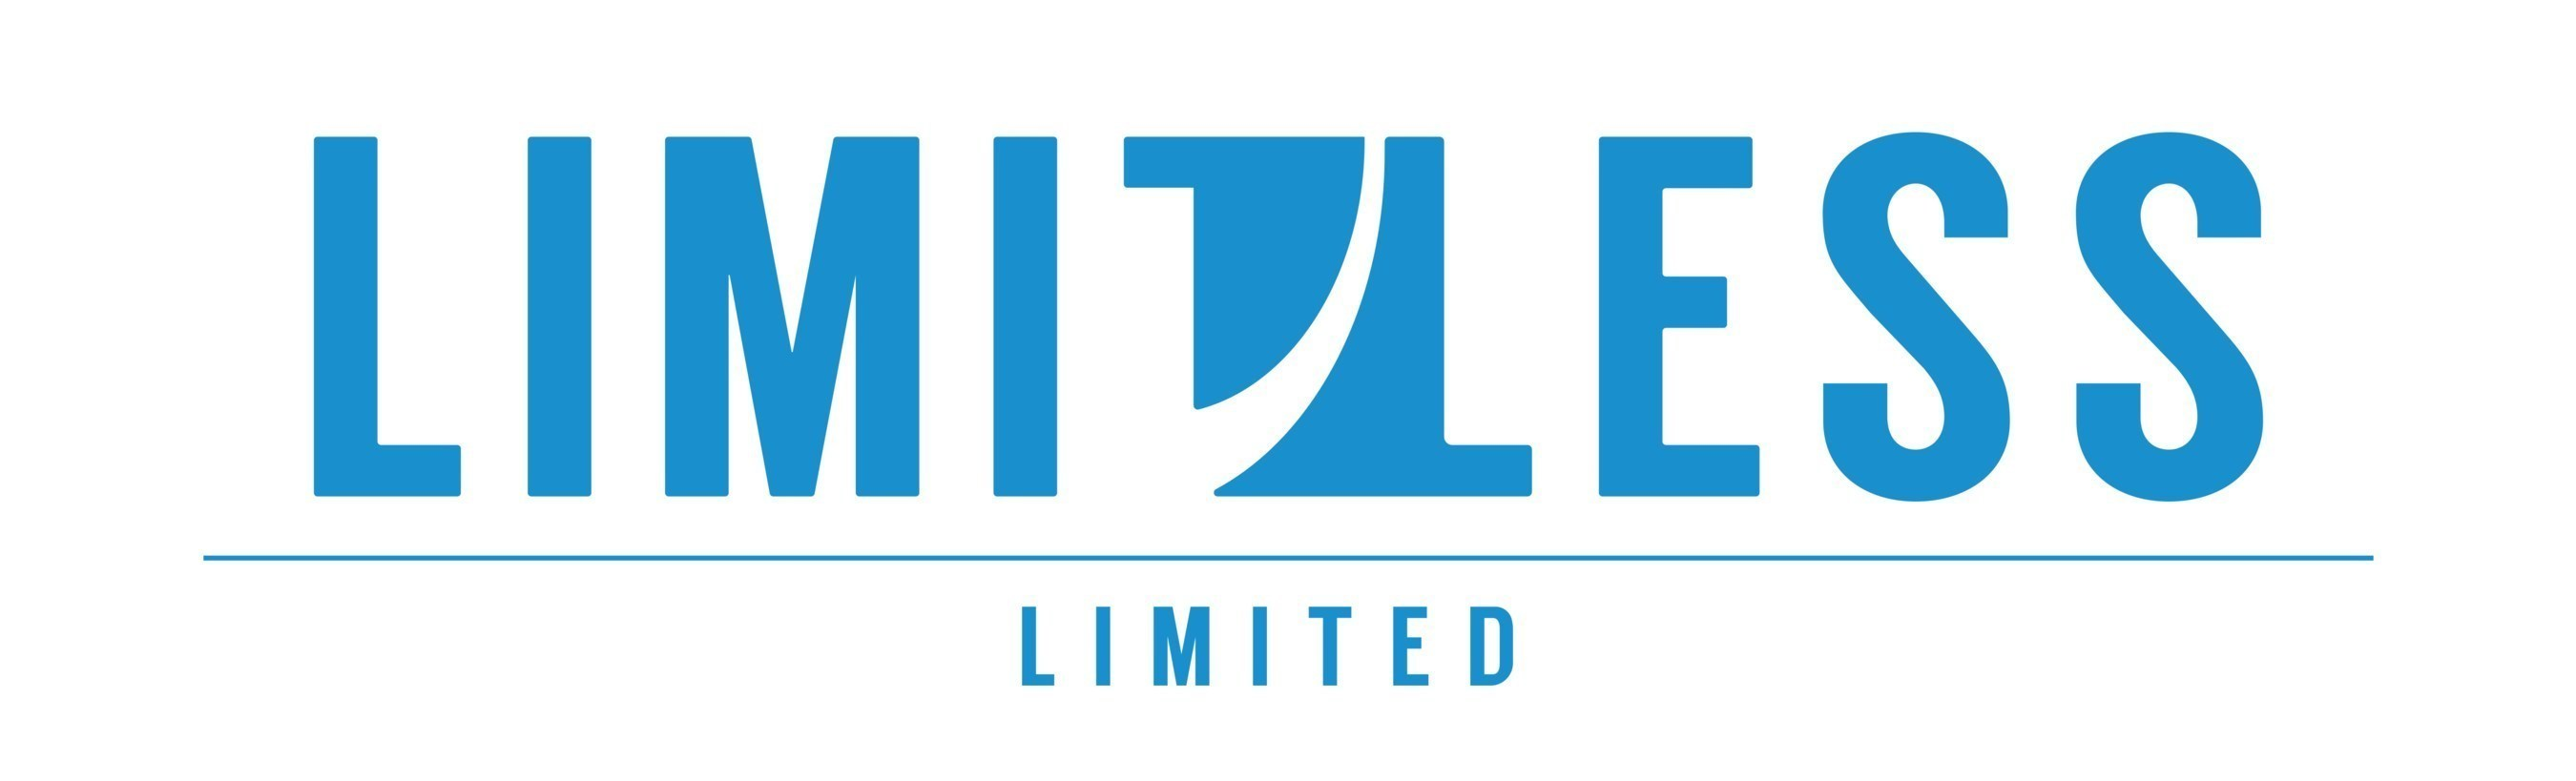 VR Company Limitless, LTD. Secures Seed Round Funding from Top Investors in Virtual Reality, Games, Tech, Entertainment & Media Sectors